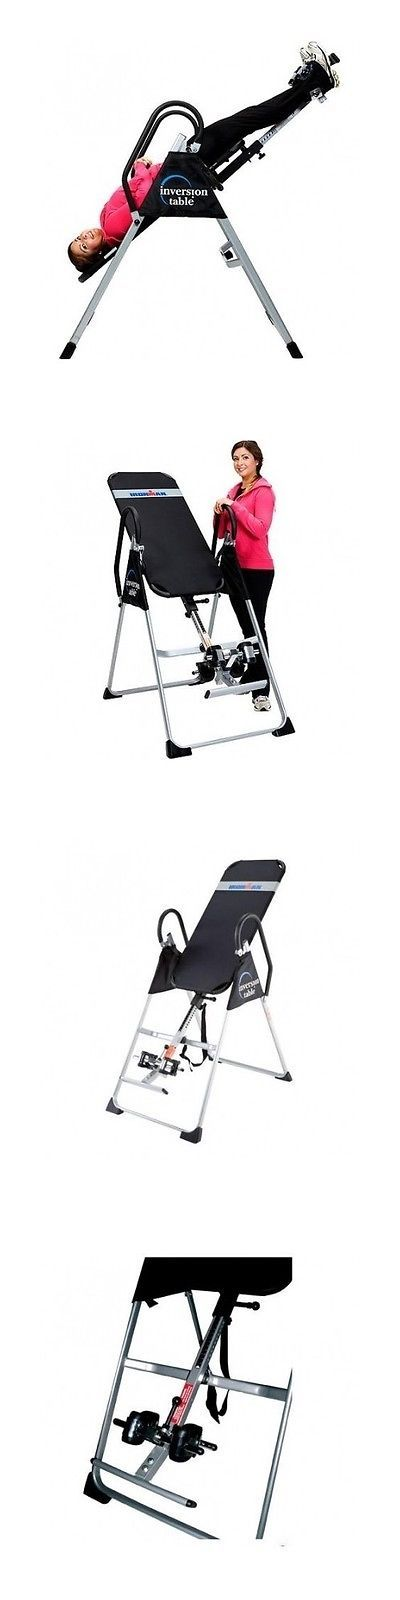 17 Best Ideas About Inversion Table On Pinterest